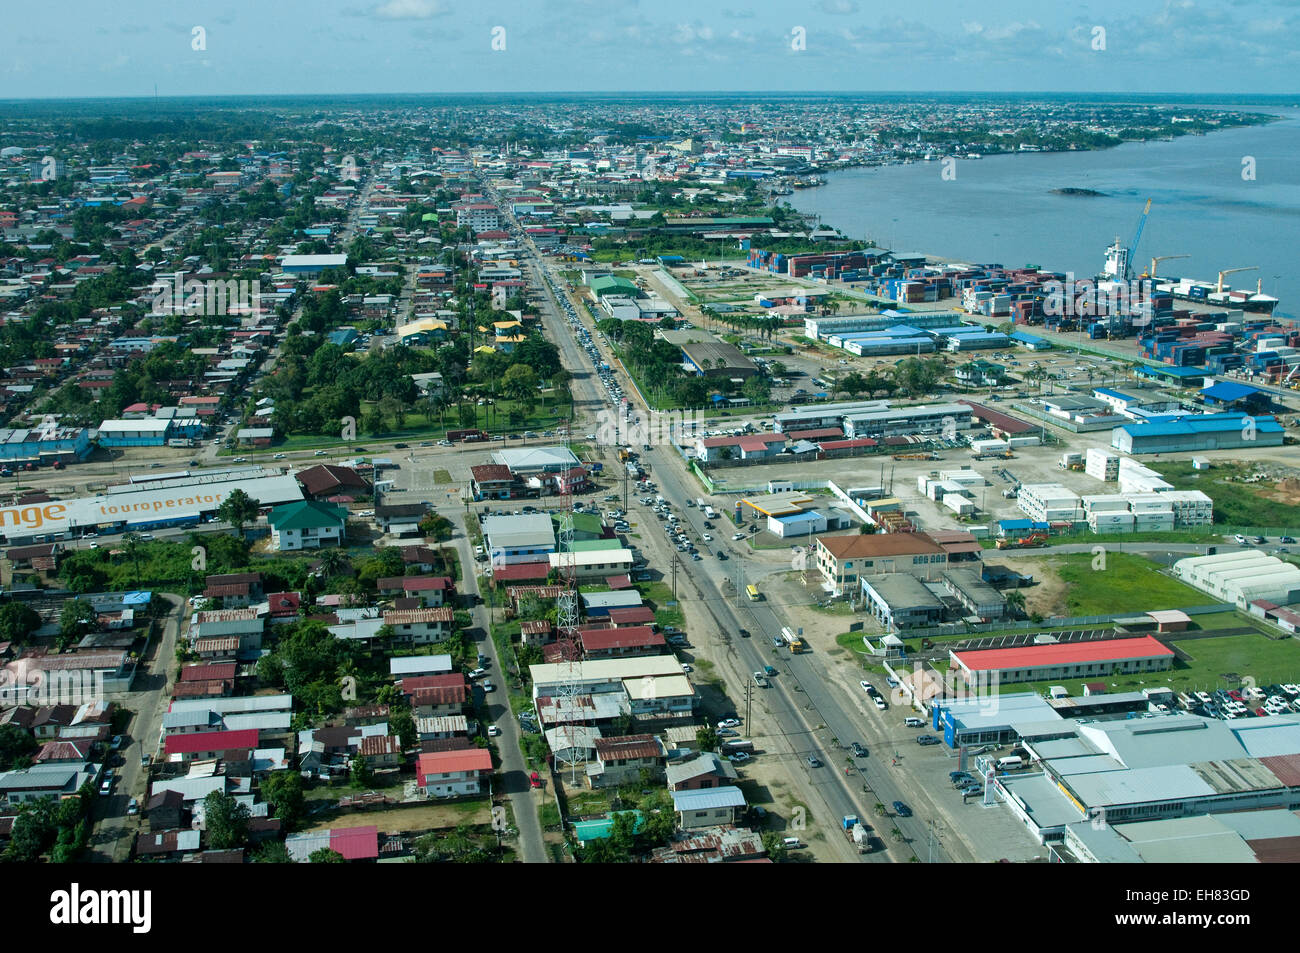 Aerial view of Paramaribo and the Suriname River, Paramaribo, Suriname, South America - Stock Image